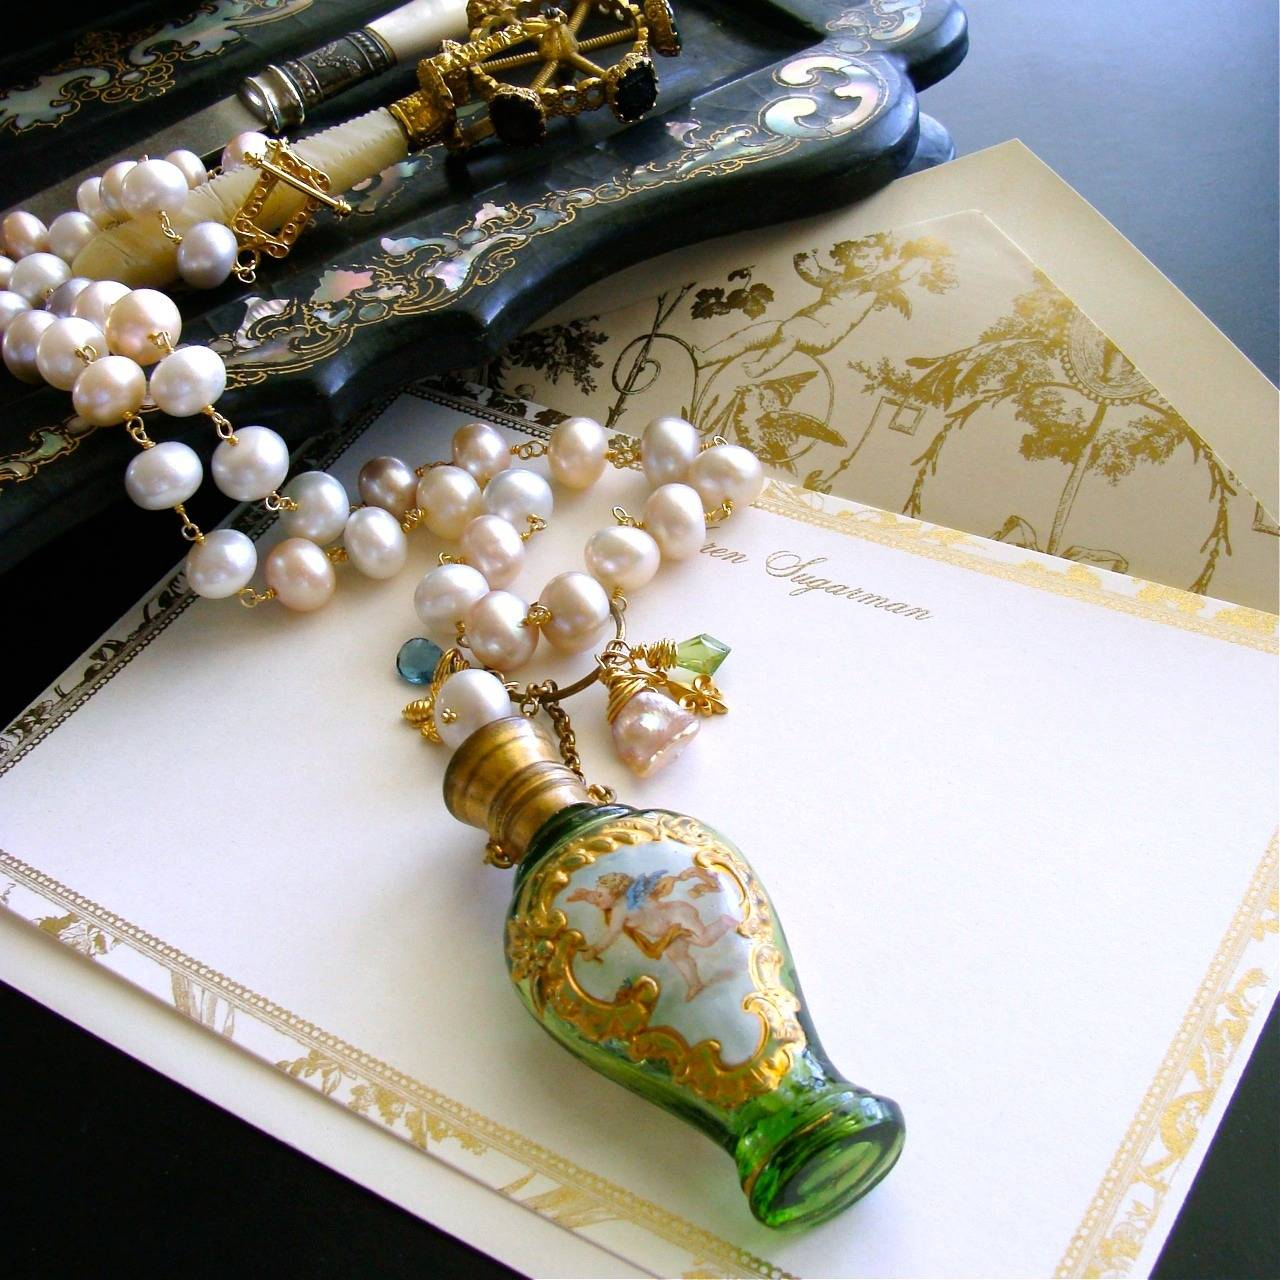 Cherub Chatelaine Scent Bottle Pink Baroque Pearls Necklace 2